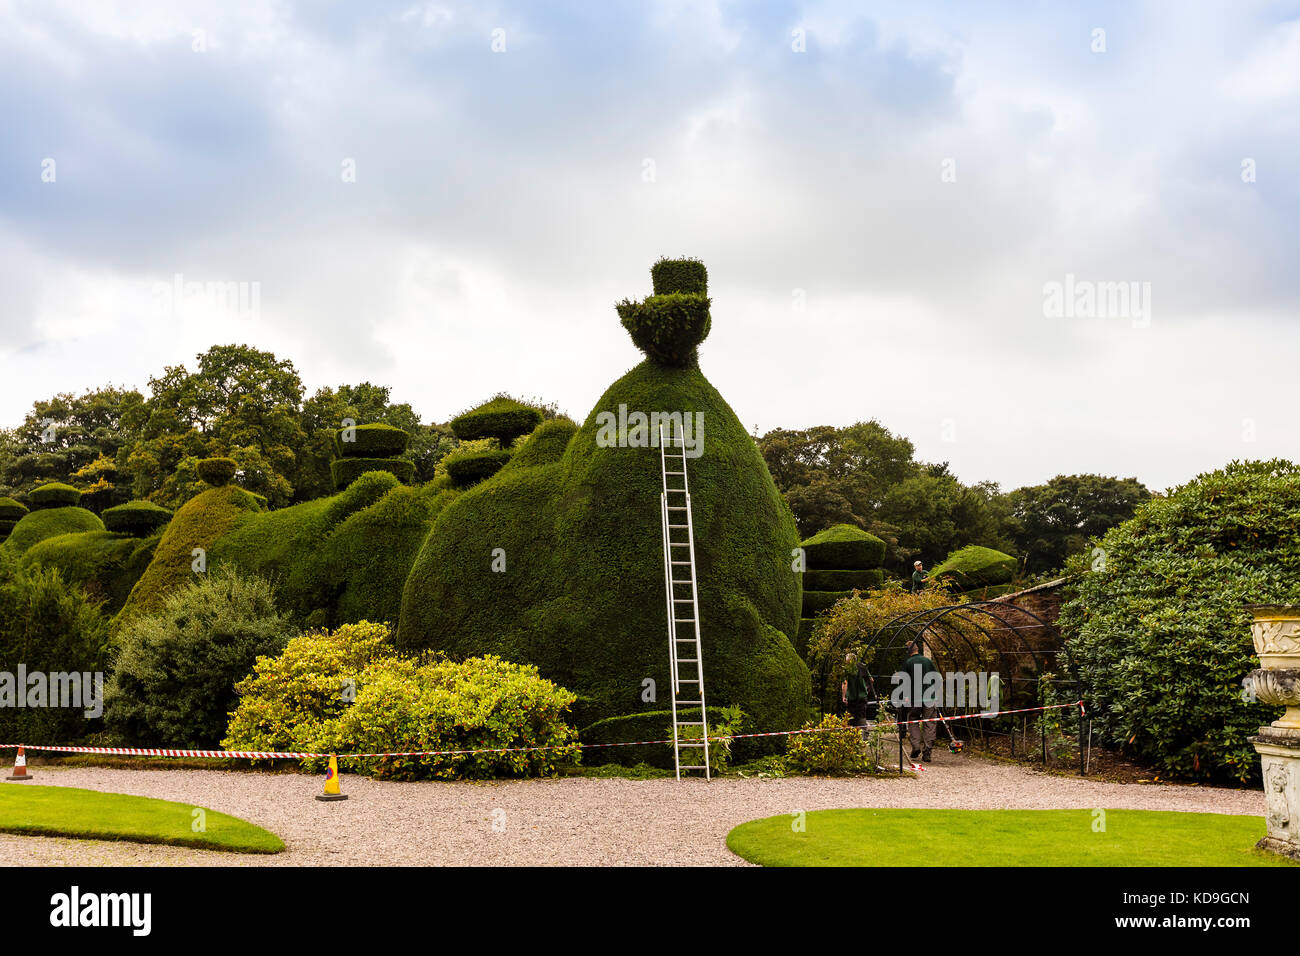 Maintenance in progress of a large topiary hedging. - Stock Image